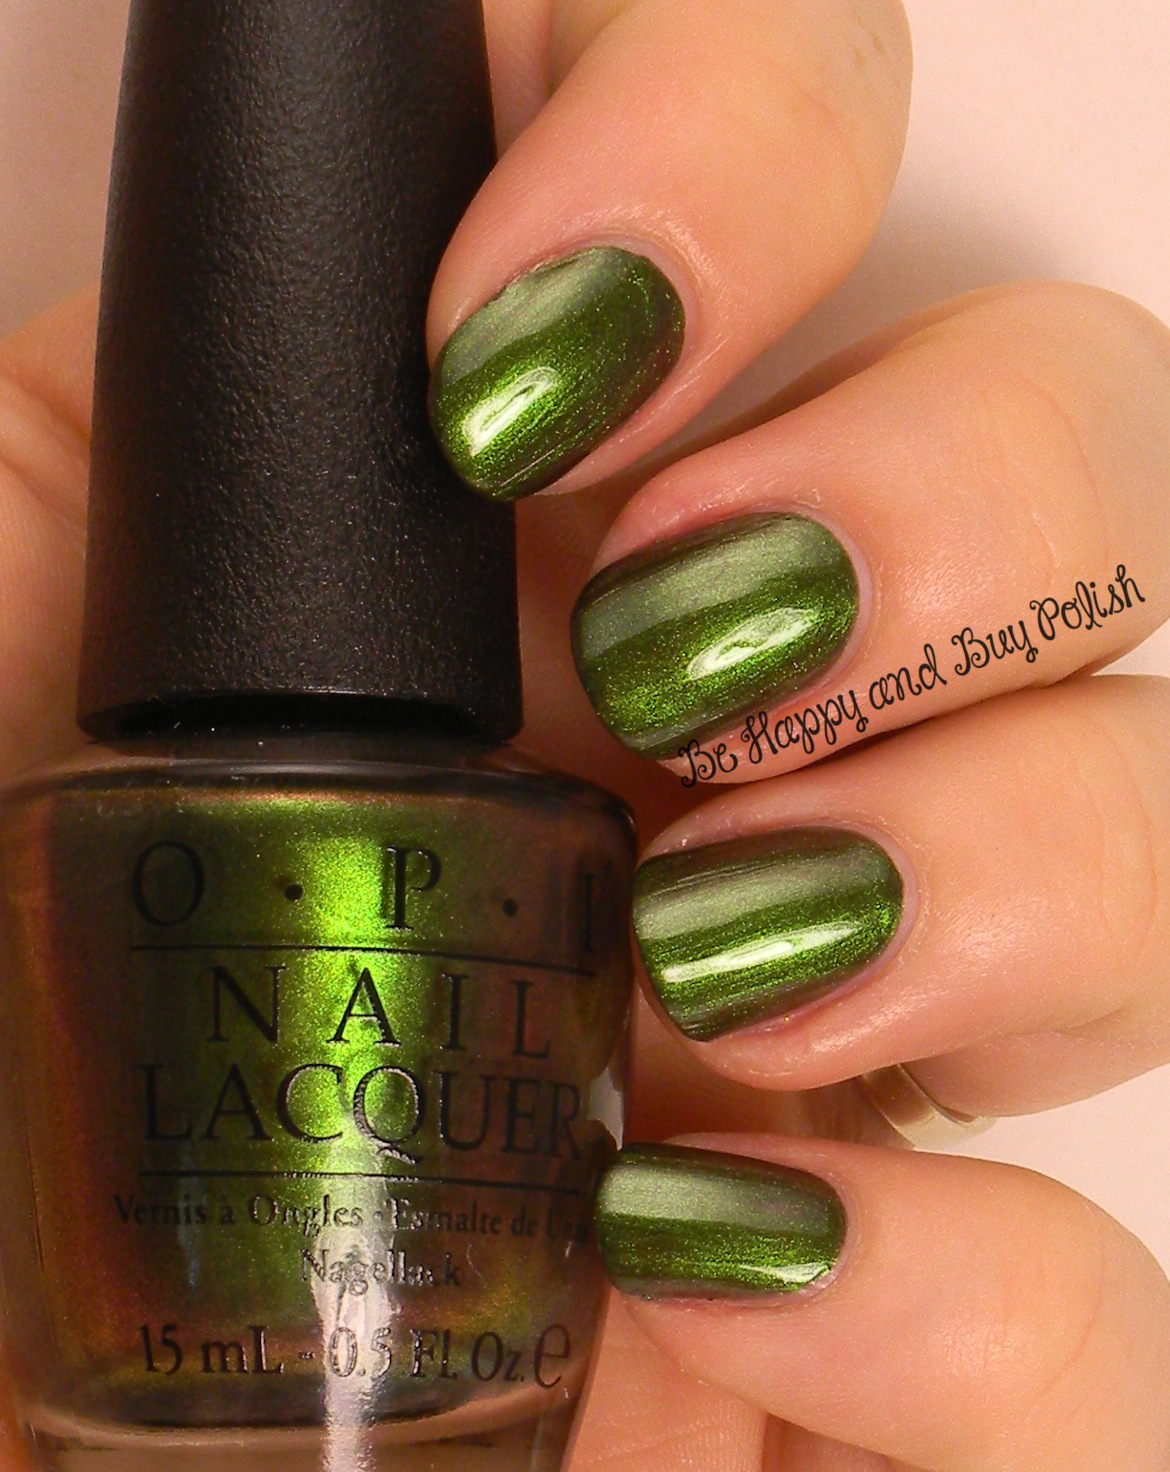 OPI Coca-Cola Nail Polish Collection (partial)